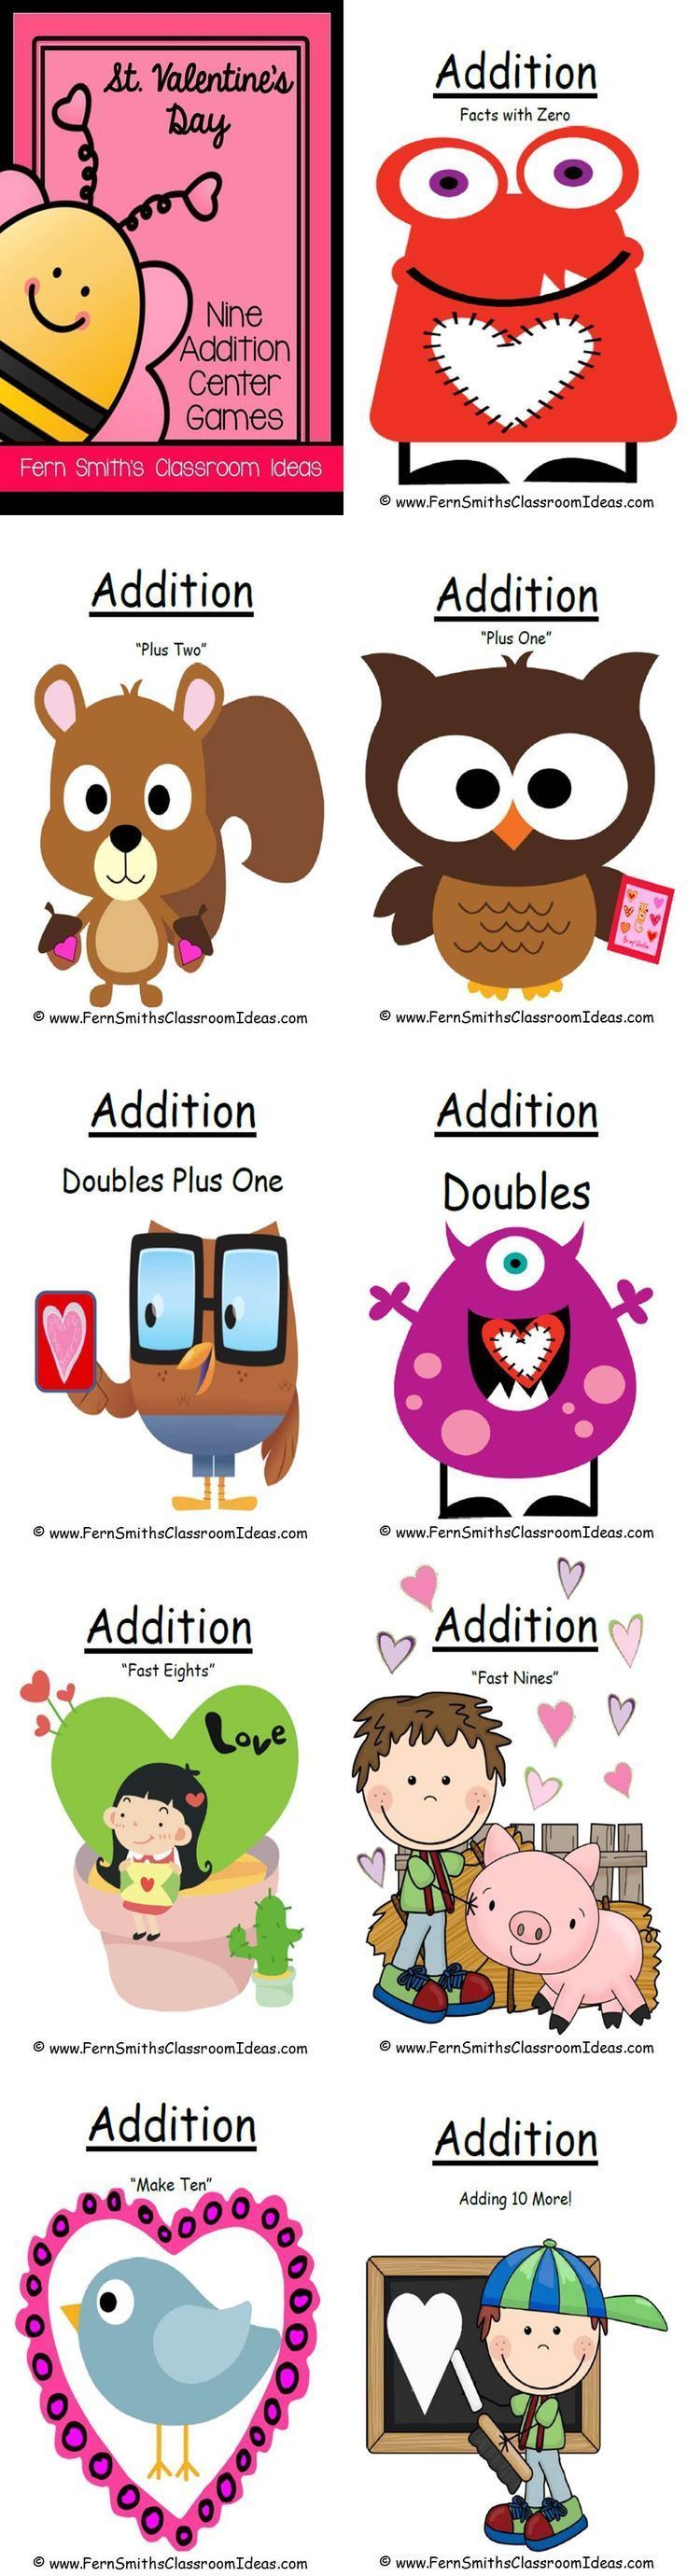 Valentines Addition Center Games - Nine Concepts Addition Facts with Zero Addition Doubles Addition Doubles Plus One Addition Plus One Addition Plus Two Addition Make Ten Addition Fast Eights Addition Fast Nines Addition Adding 10 More #TPT $Paid